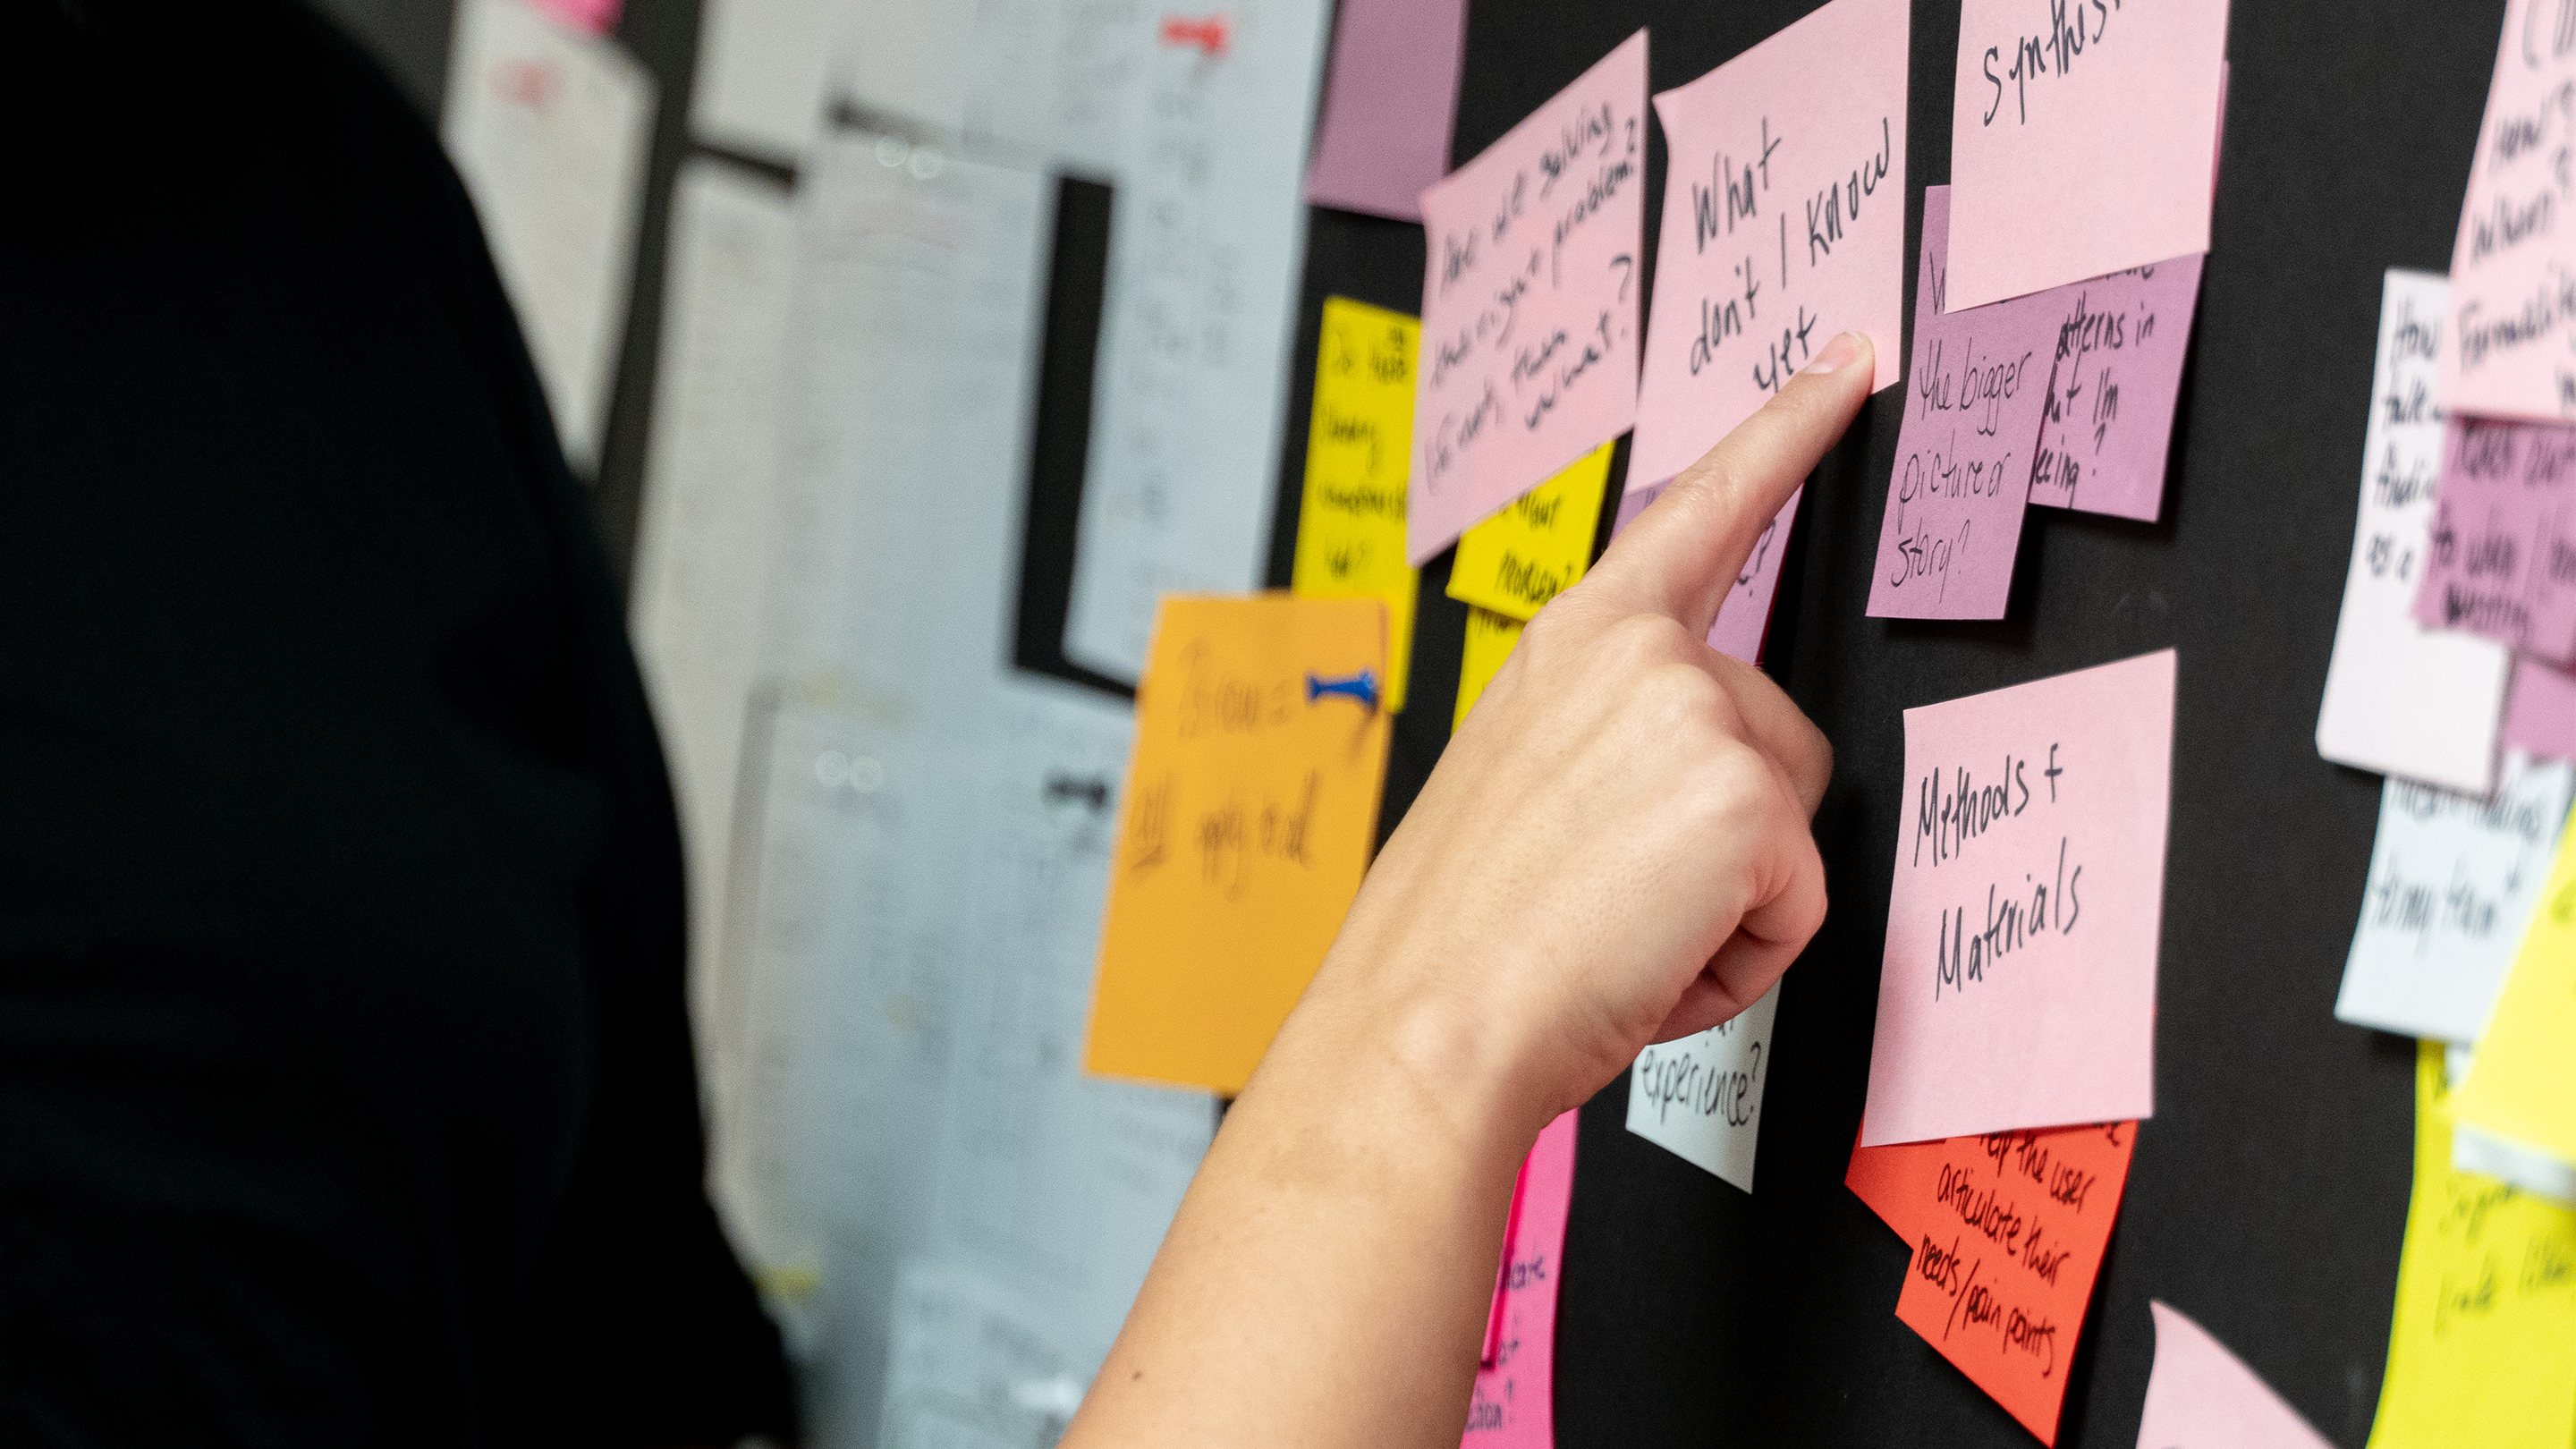 Hand pointing to wall of sticky notes